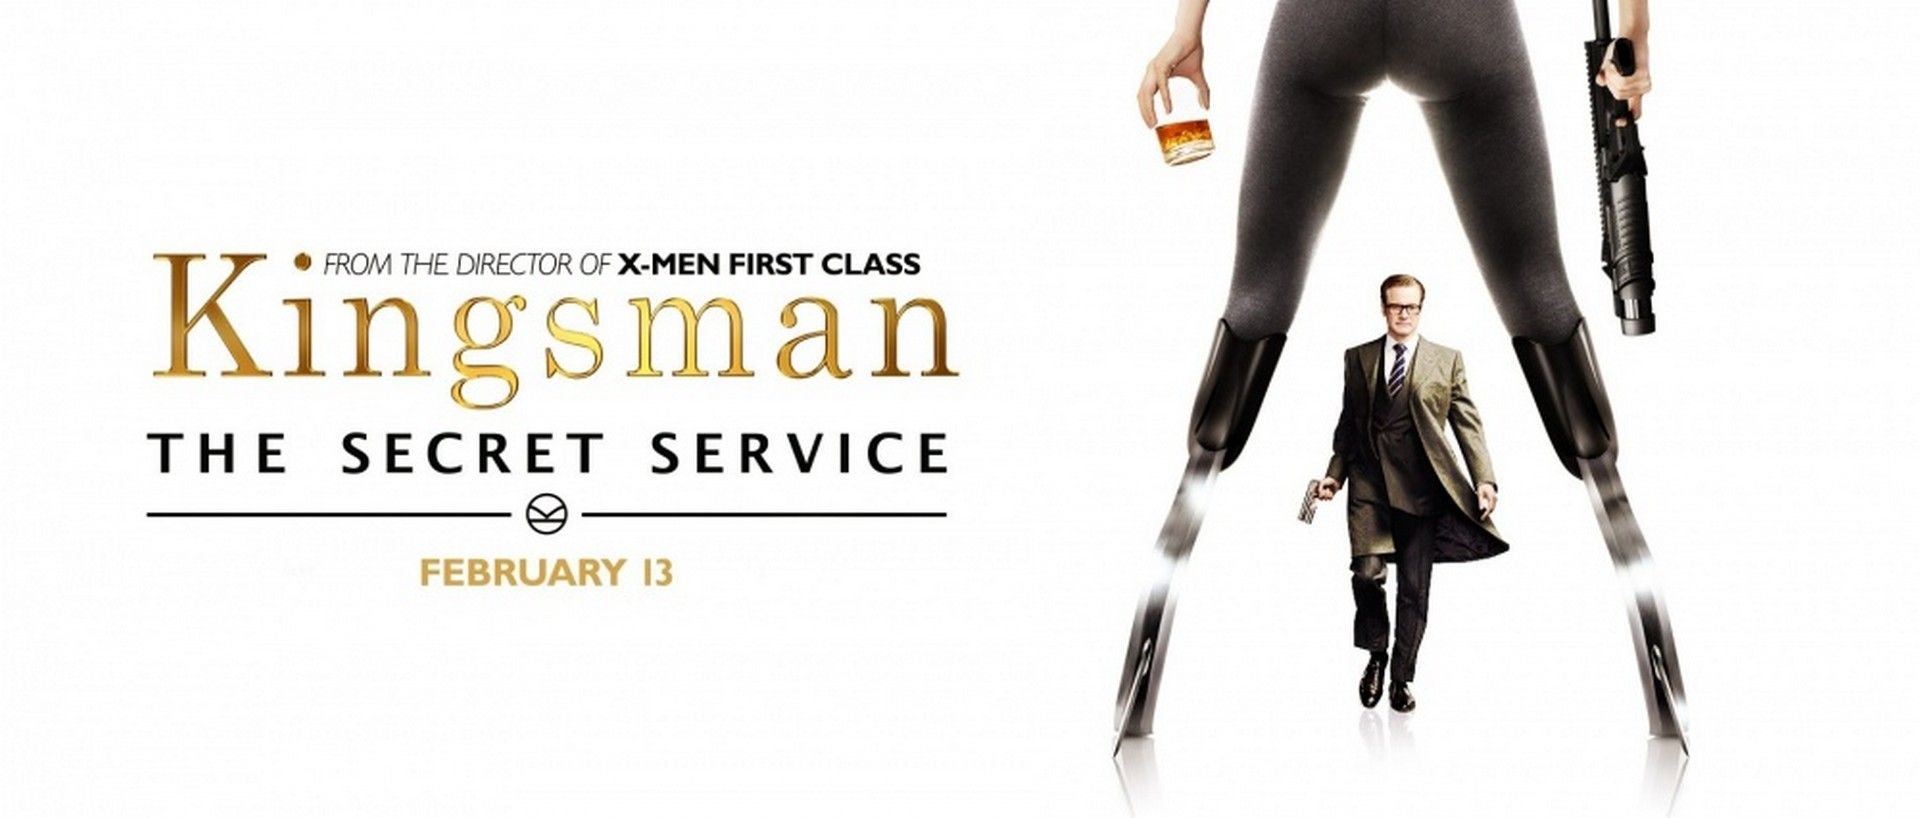 Kingsman The Golden Circle Wallpaper: Kingsman: The Golden Circle Wallpaper Hd